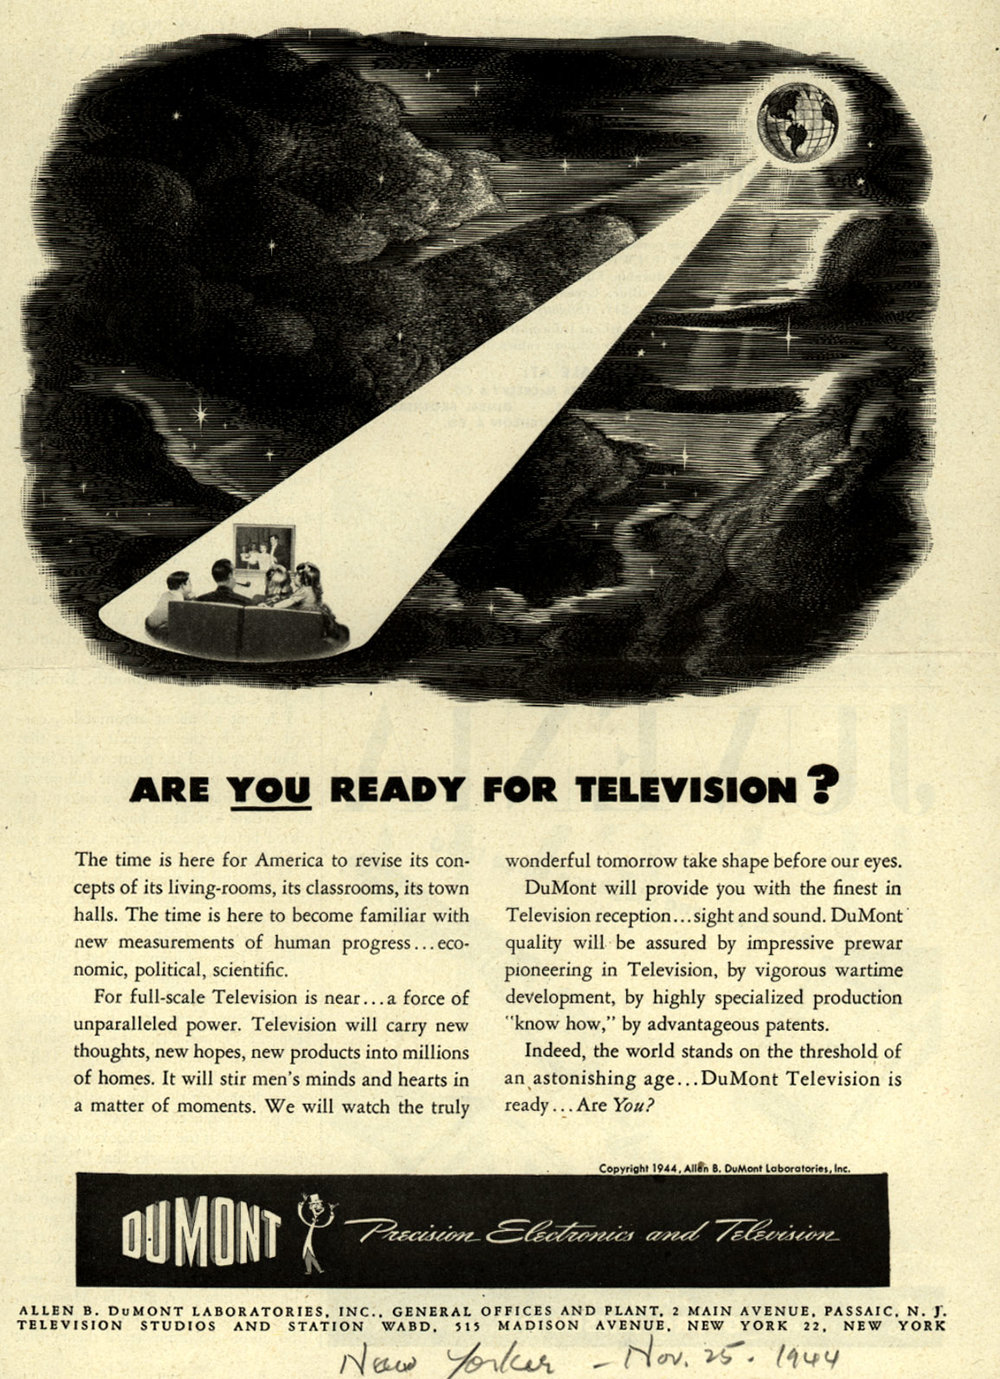 Are-You-Ready-for-Television-ad-DuMont-Labs-1944.jpg